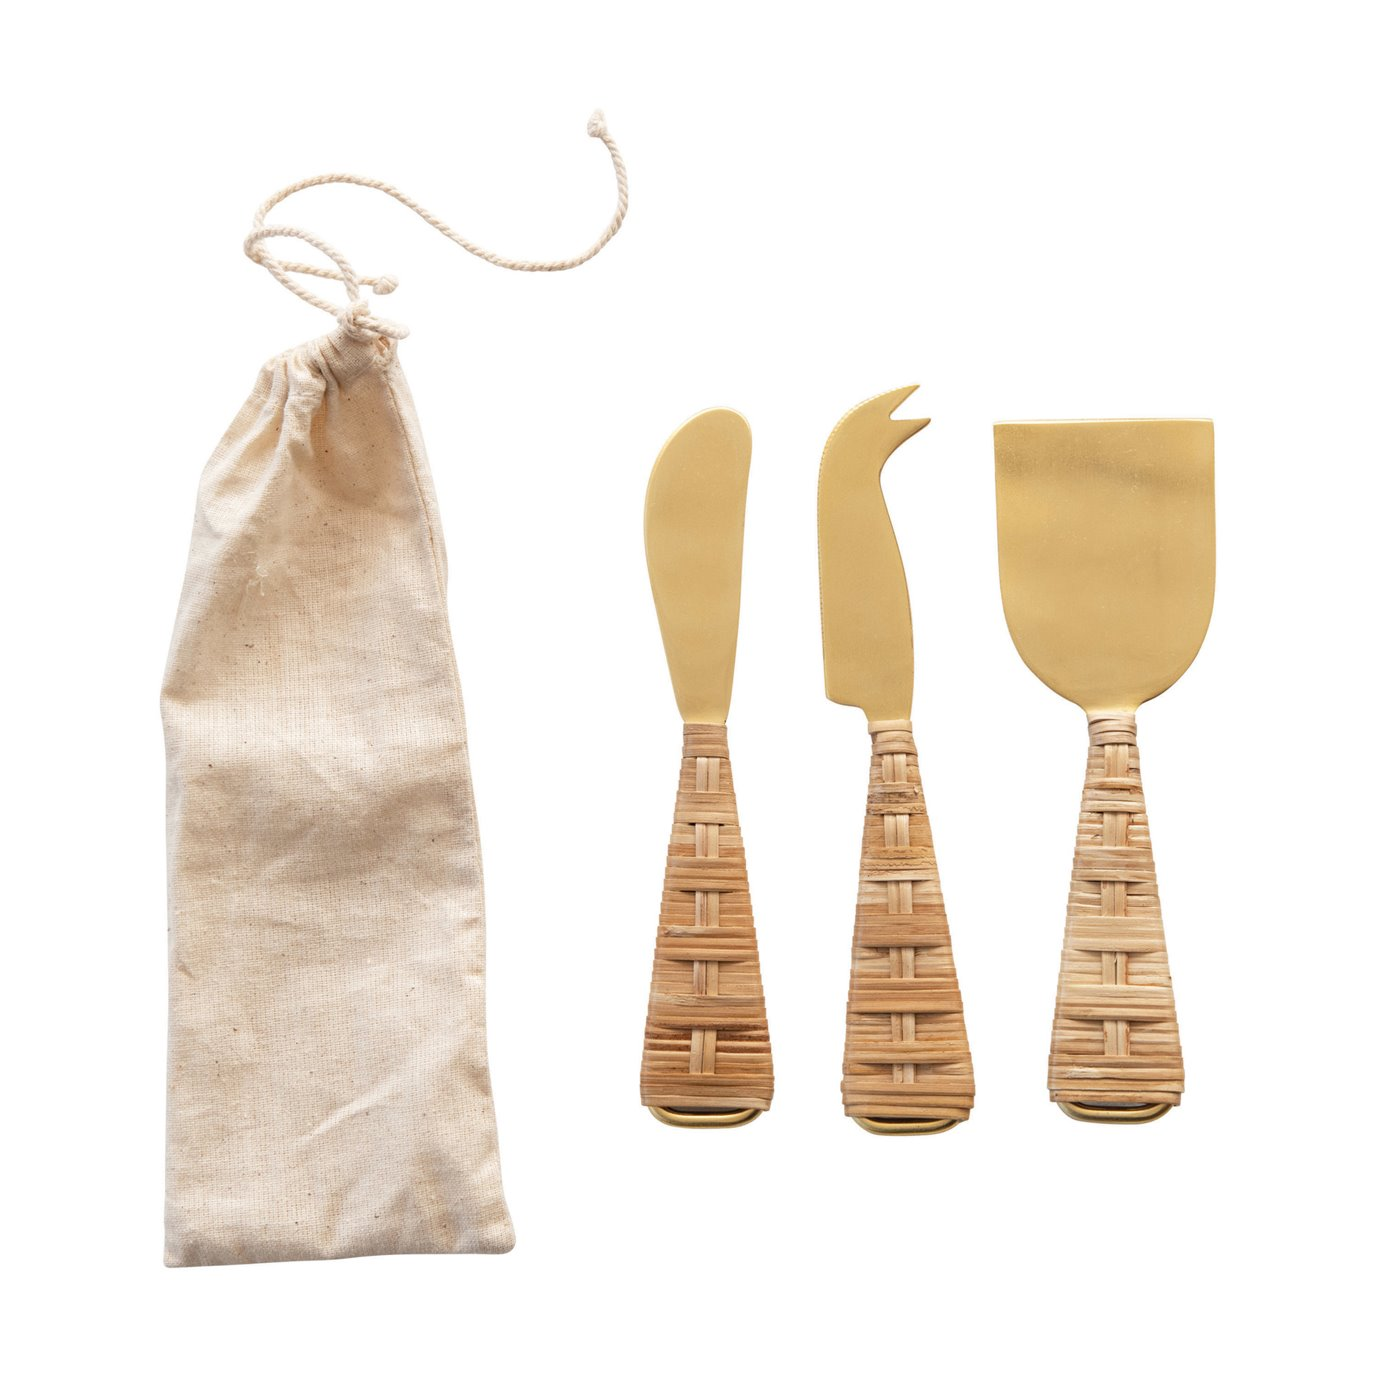 Stainless Steel Cheese Knives with Rattan Wrapped Handles in Drawstring Bag, Gold Finish, Set of 3